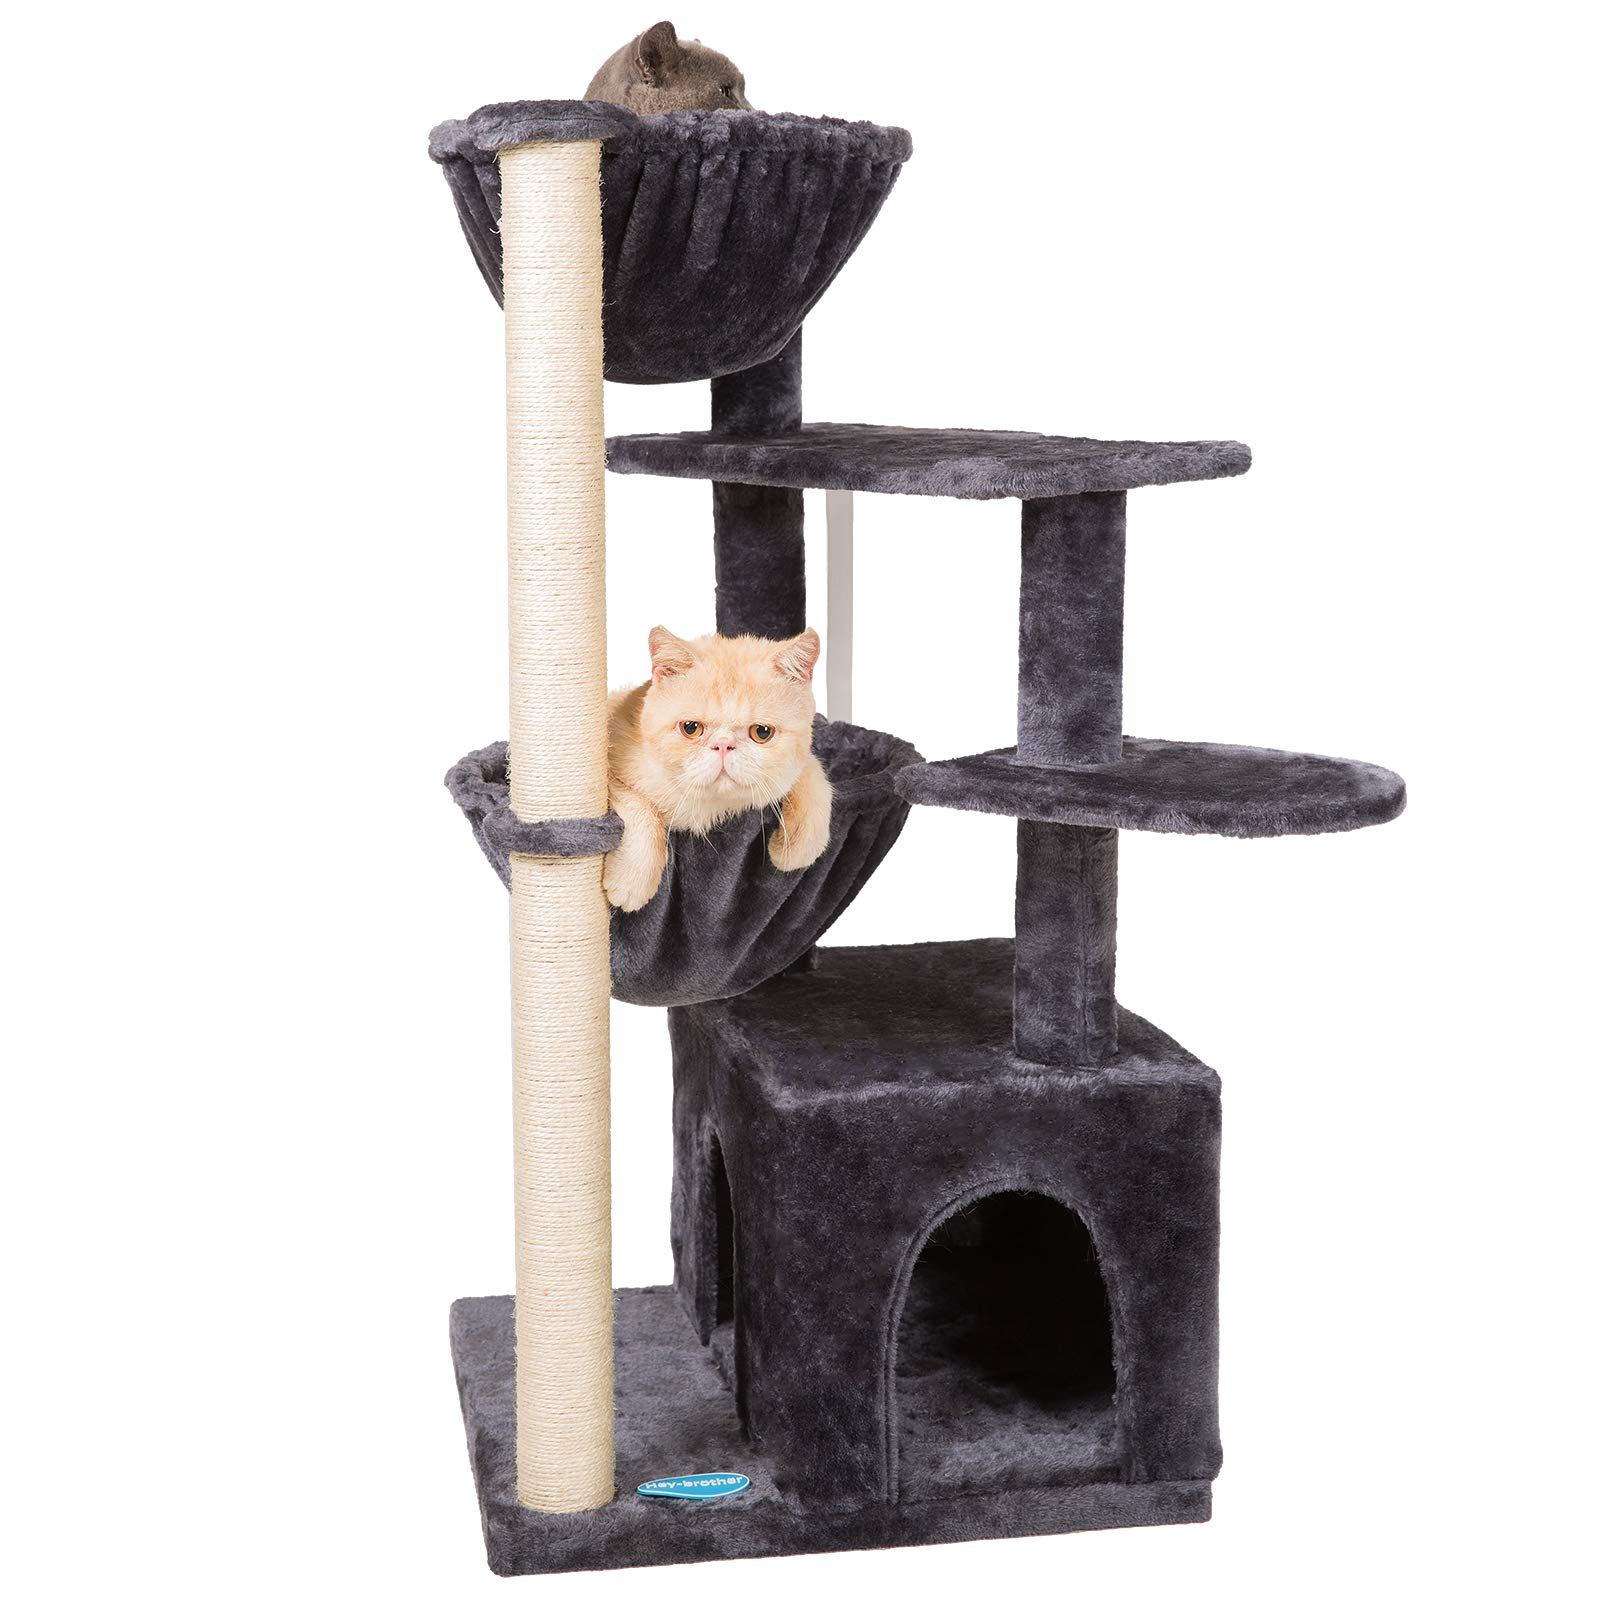 Hey-brother Multi-Level Cat Tree Condo Furniture with Sisal-Covered Scratching Posts for Kittens Cats and Pets